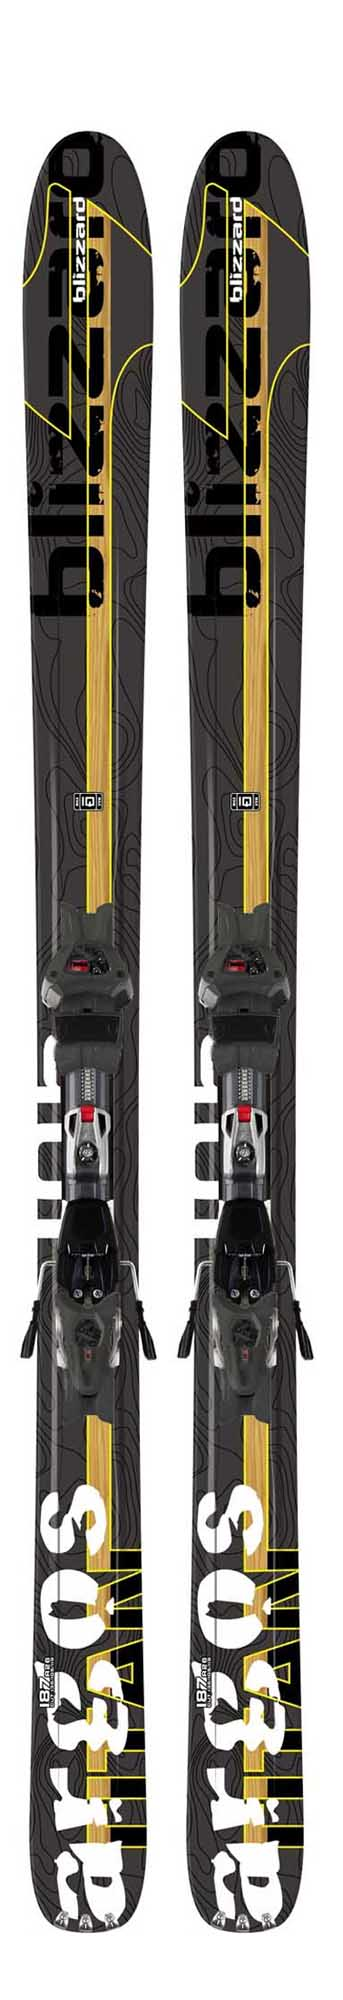 Blizzard 10 - 11 Argos Titan IQ Skis w/Max 14 Bindings NEW !!  187cm